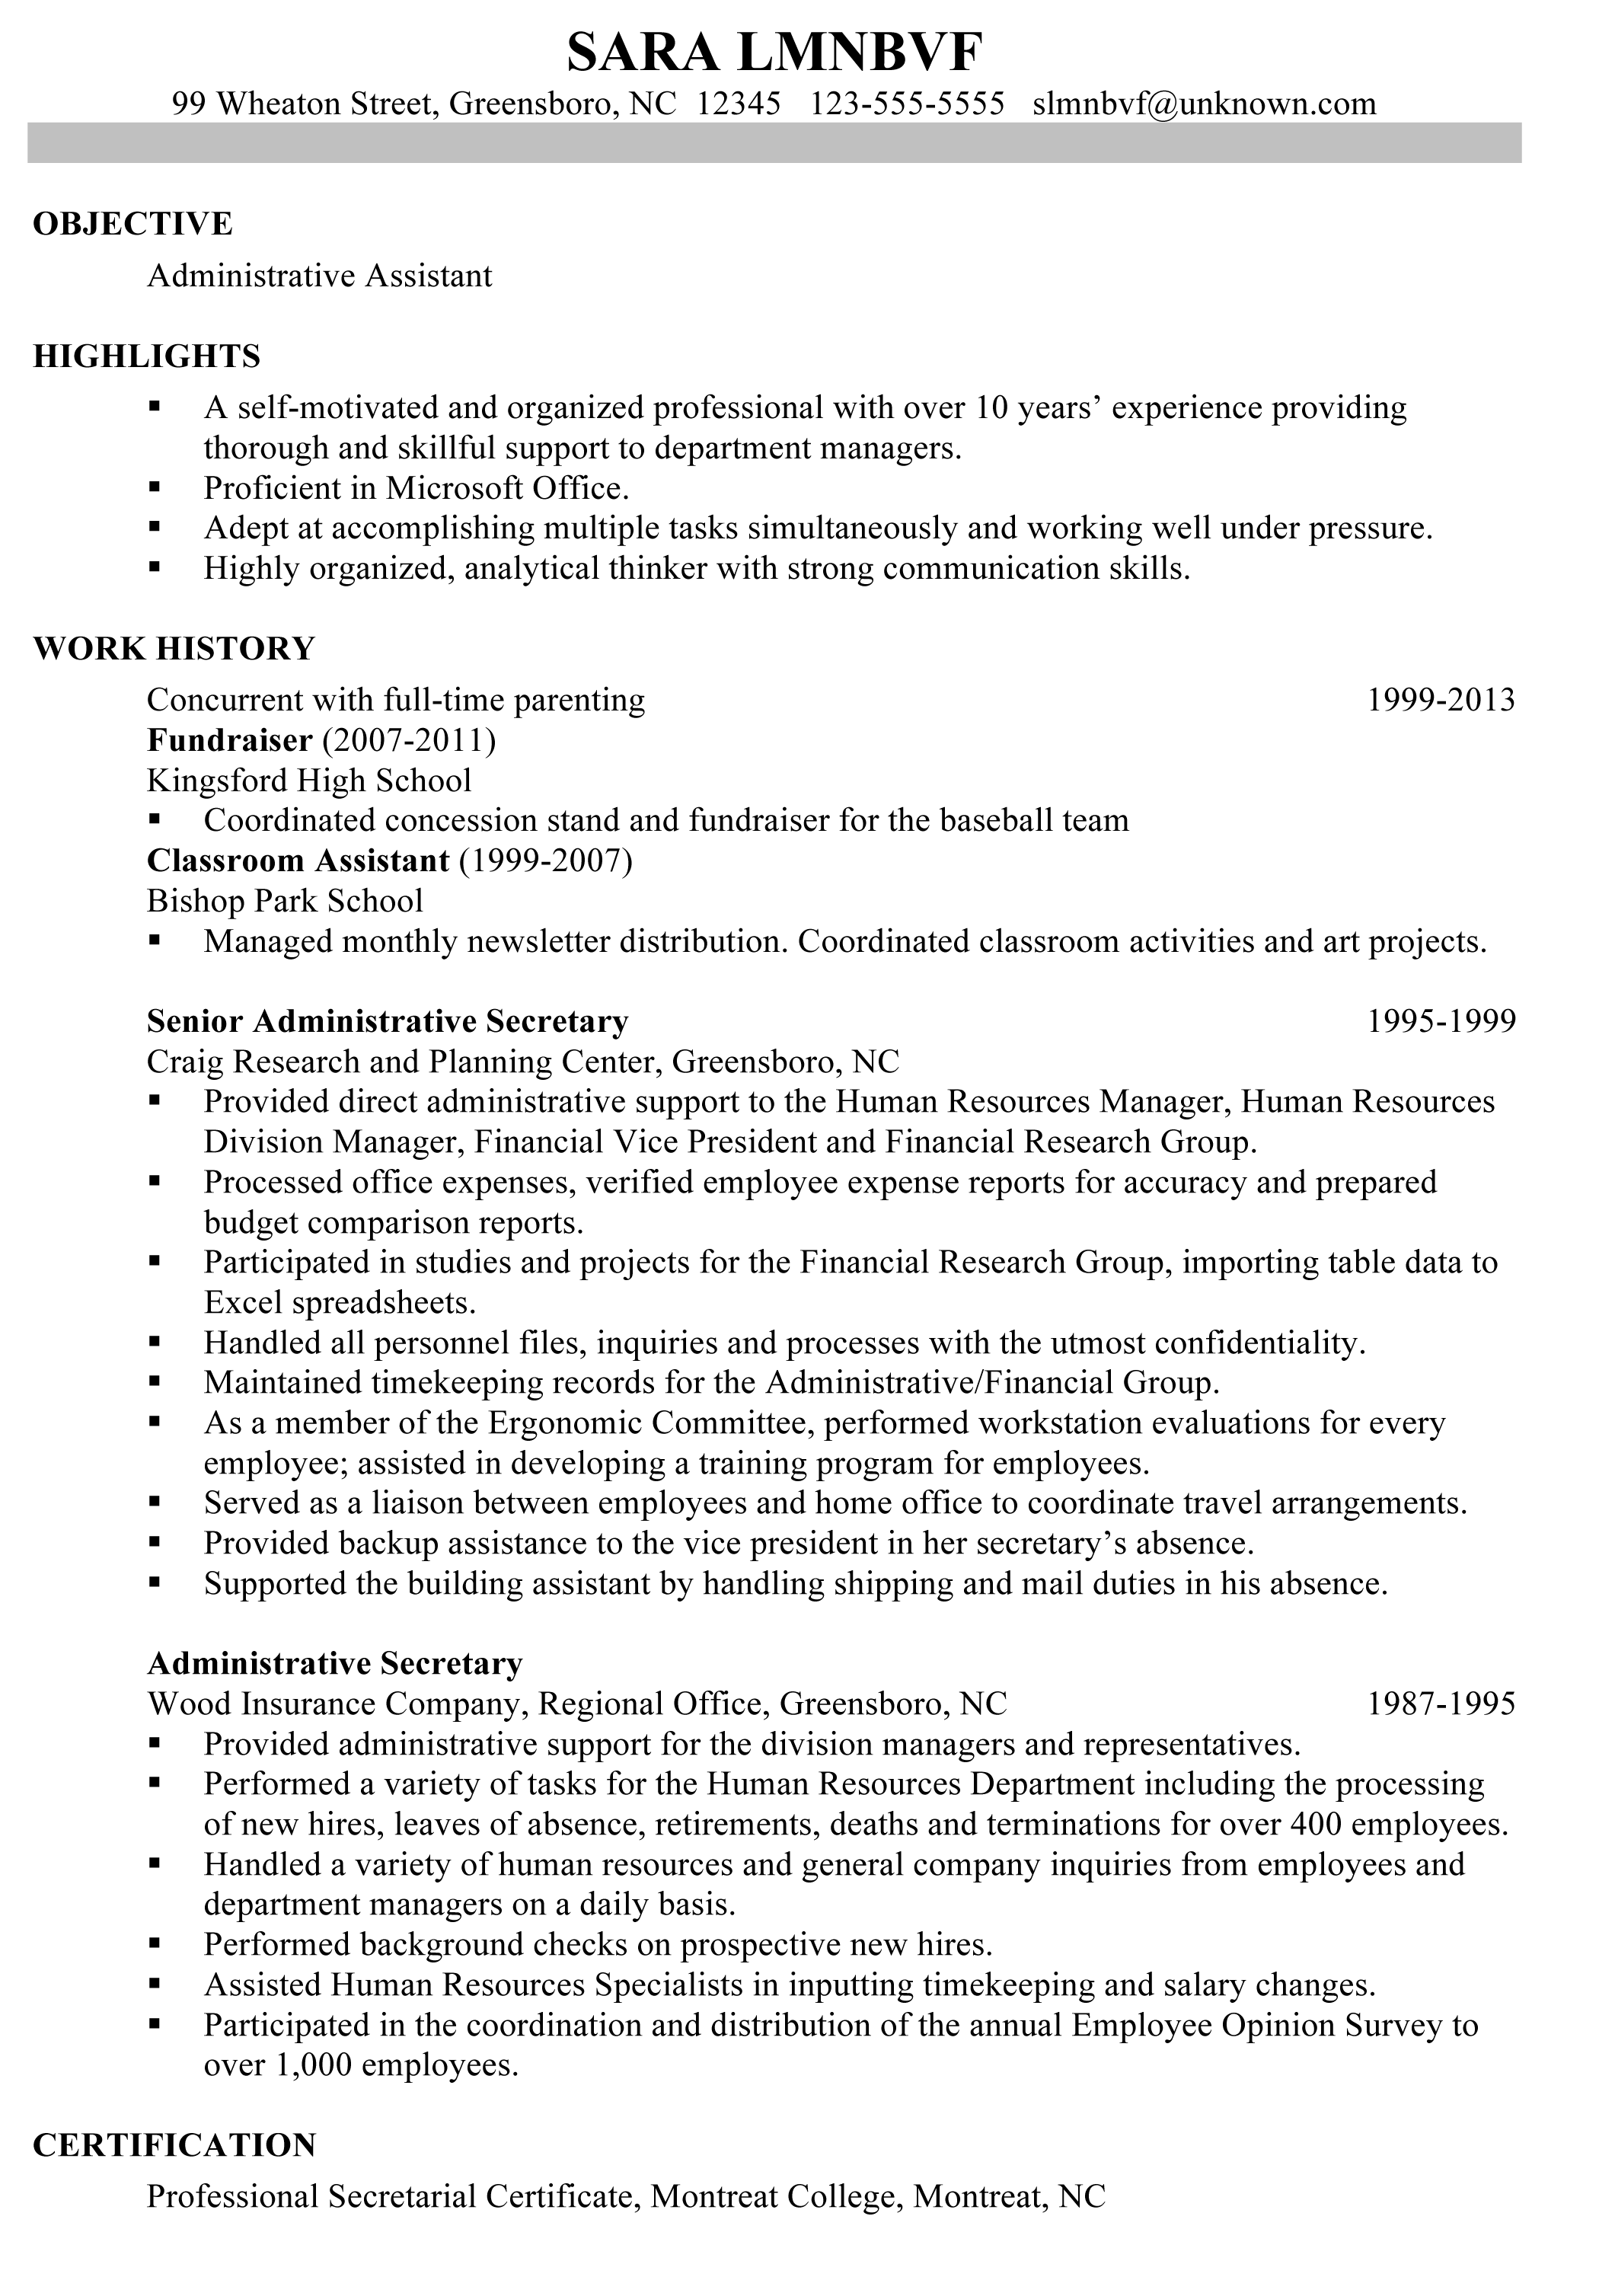 Administrative Assistant Resume Objective Examples Chronological Resume Sample Administrative Assistant  Resume